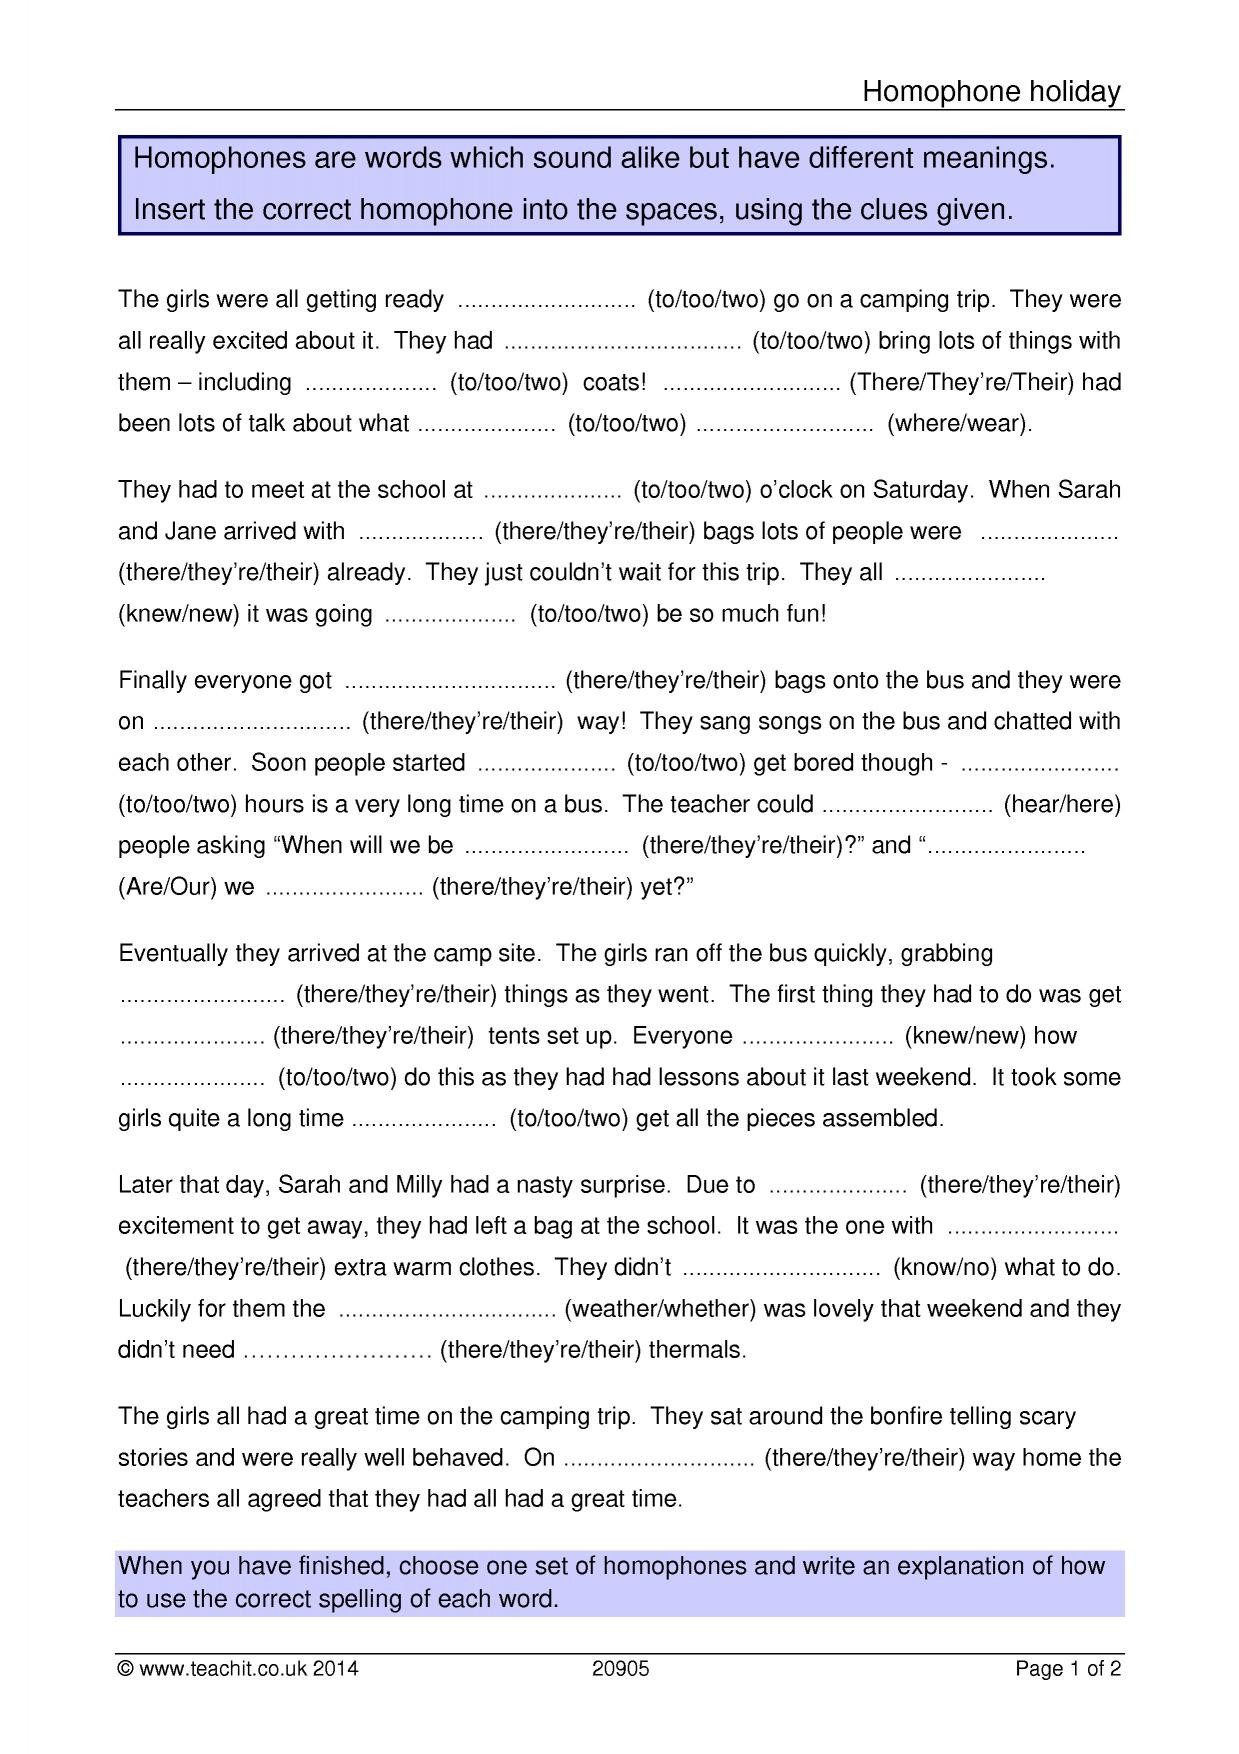 Homophone Worksheets Middle School to too Two there their theyre Worksheet